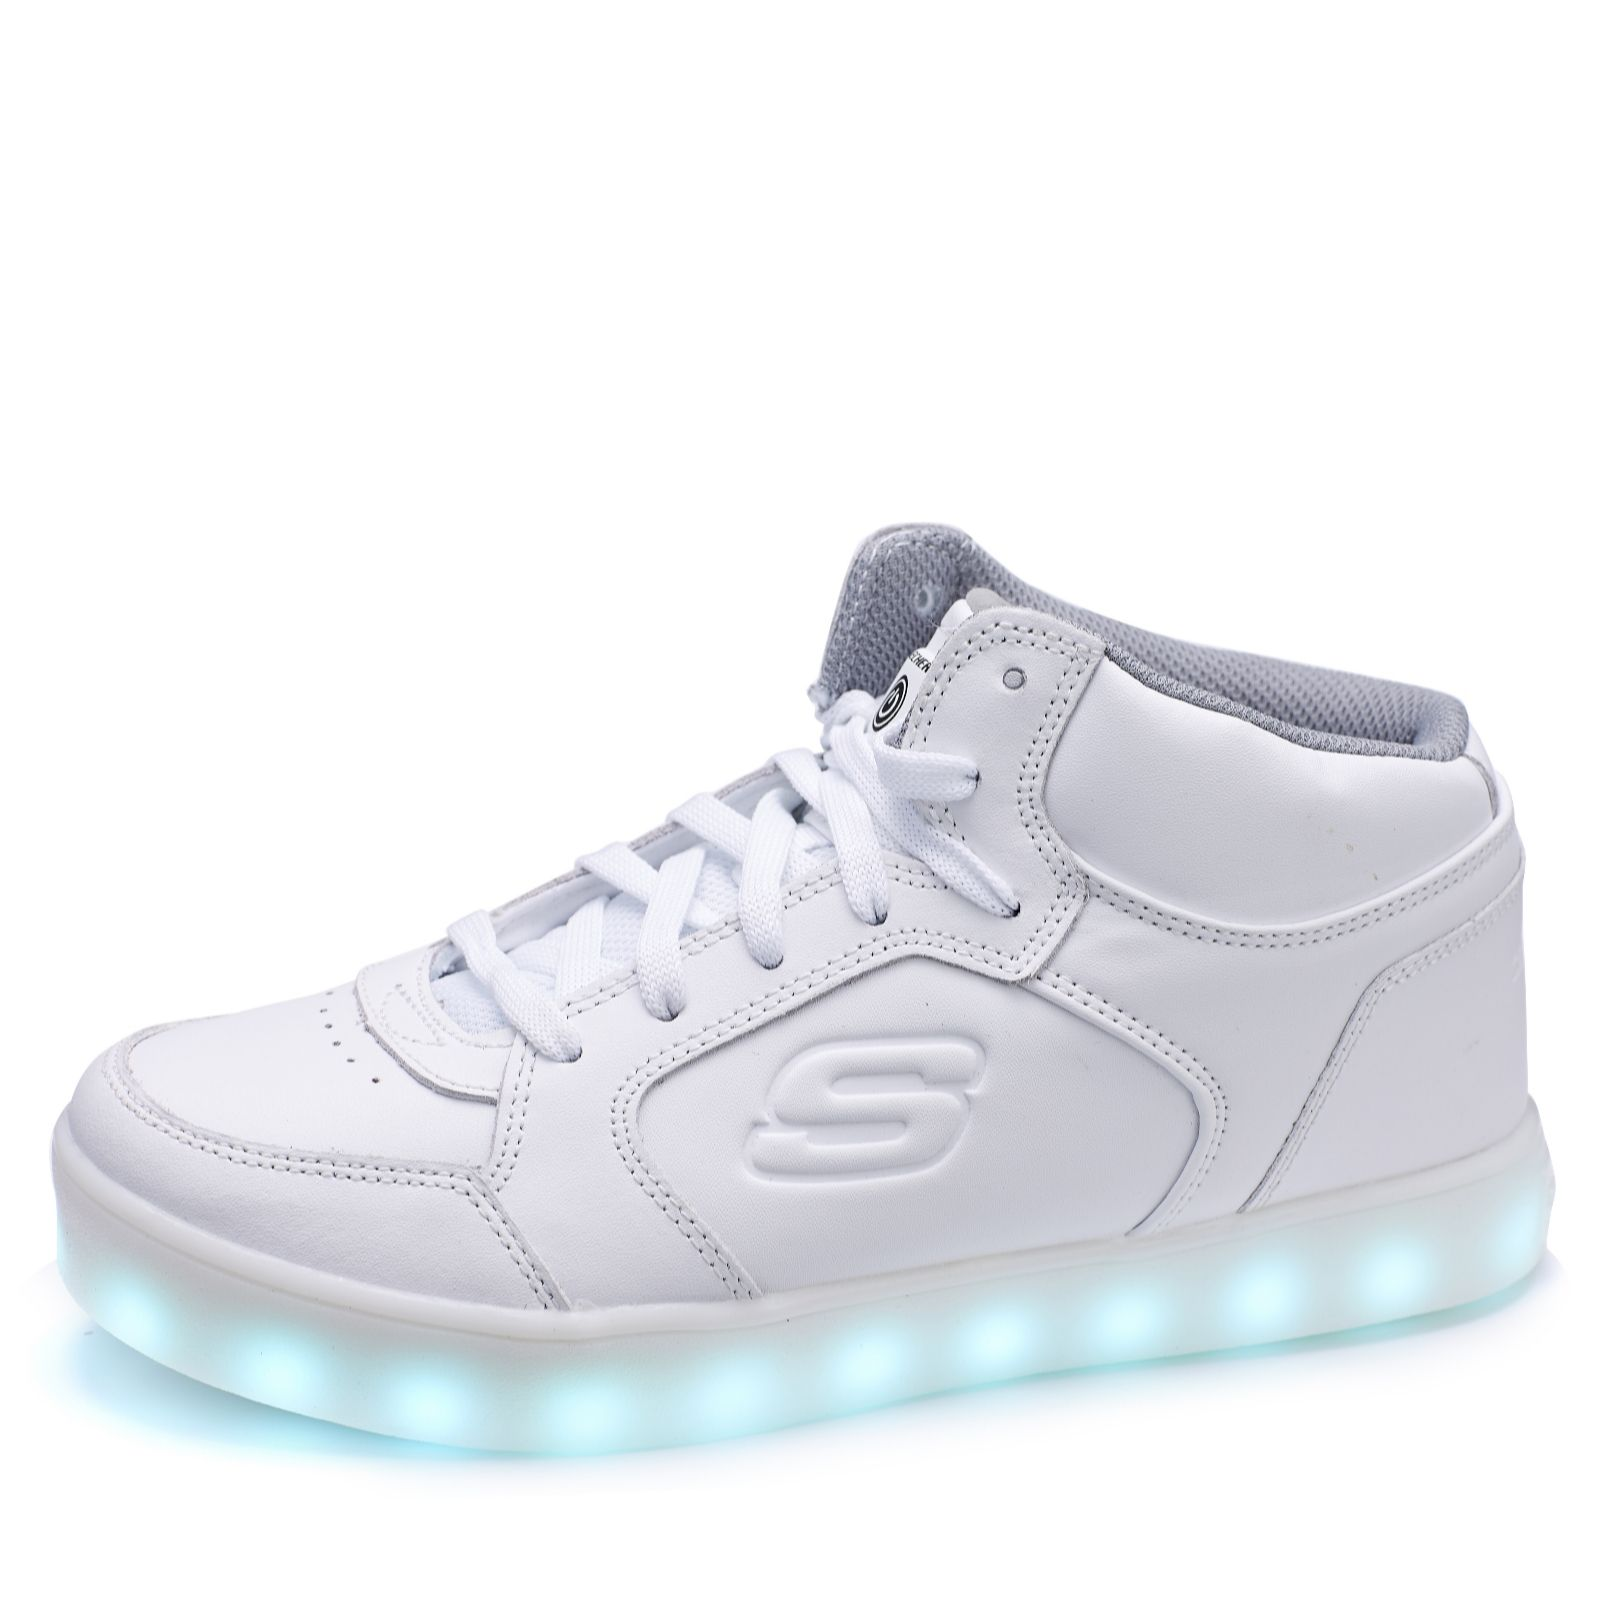 on feet images of attractive & durable discover latest trends Skechers Kid's Energy Lights Mid Top Lace Up Trainer with Hidden Lights -  QVC UK